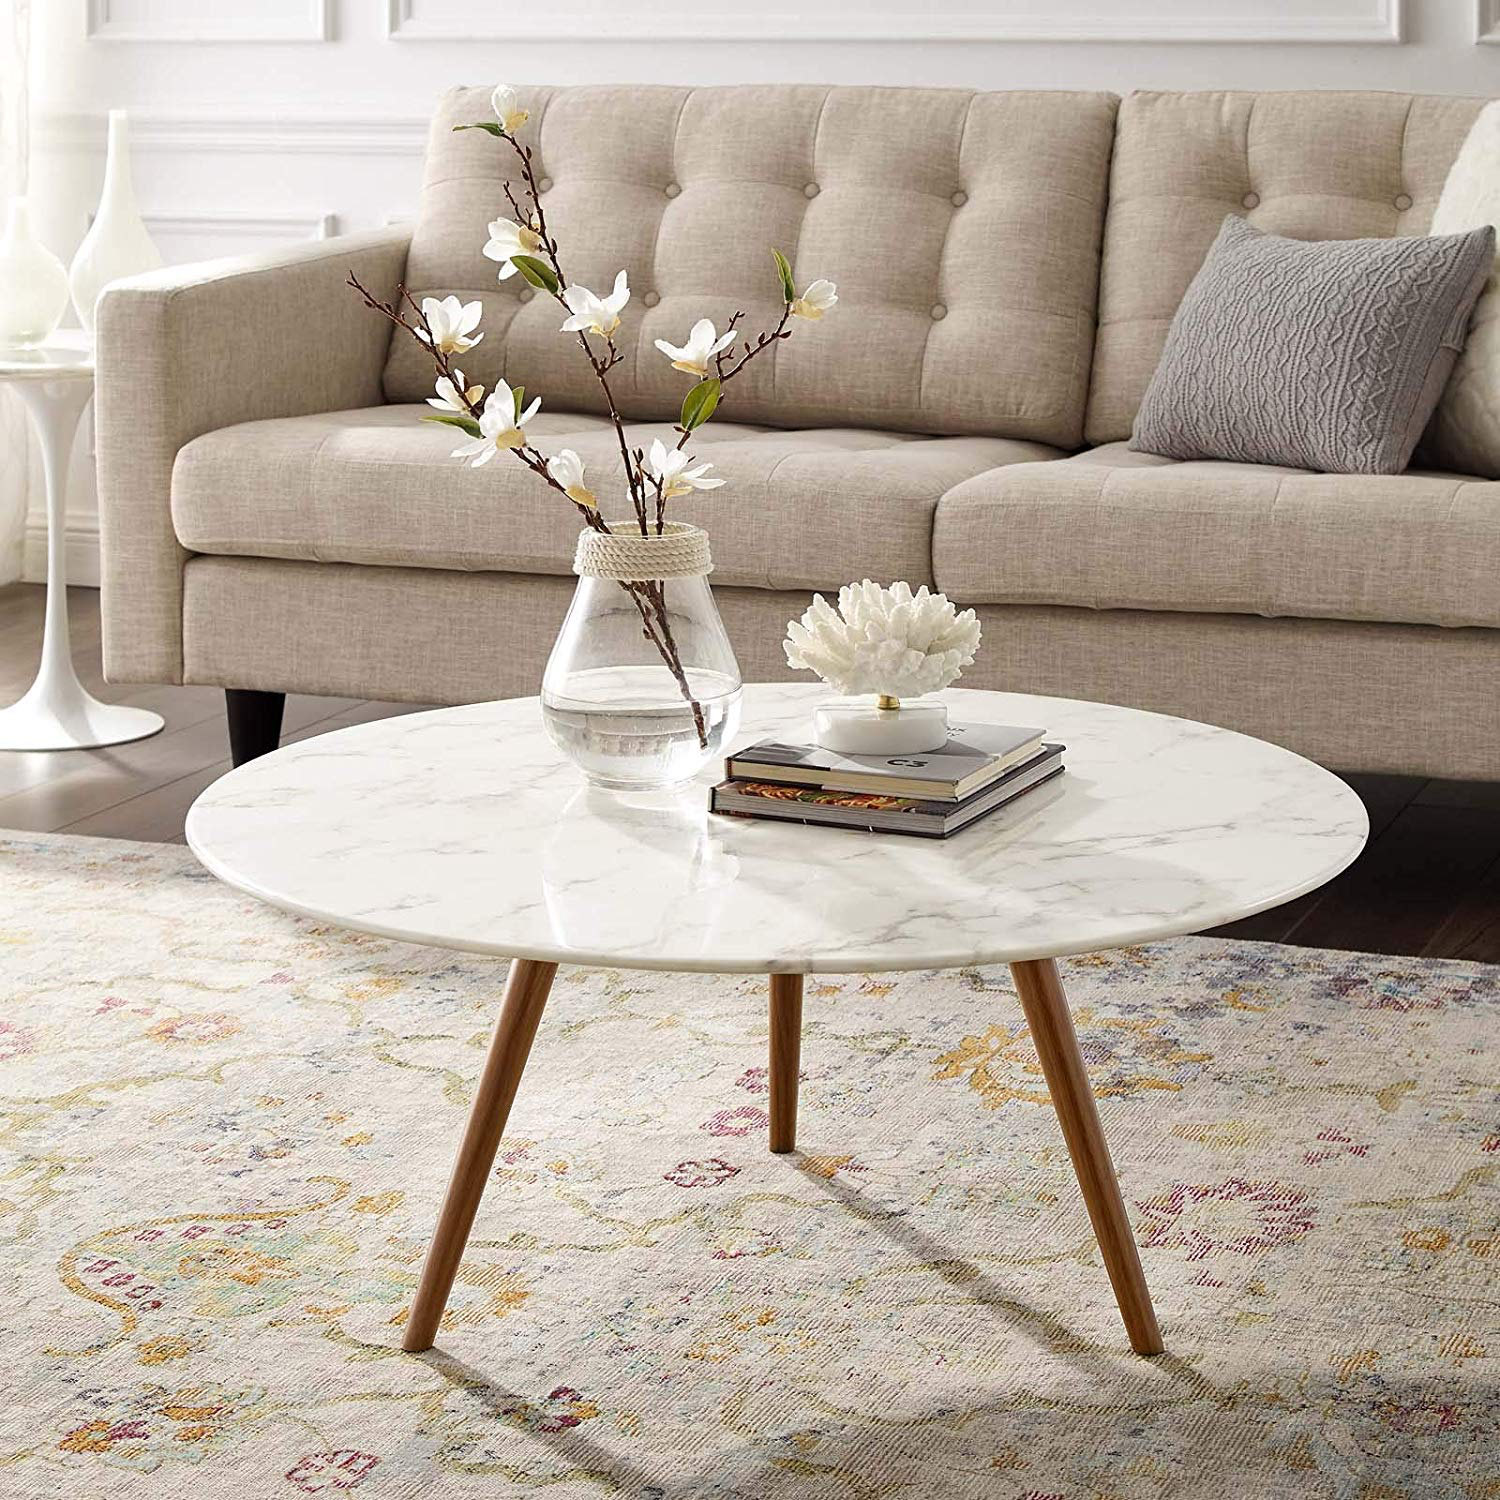 Pin By Prince Quesadilla On Living Room Design Board Coffee Table Round Coffee Table Modern Coffee Table White [ 1500 x 1500 Pixel ]